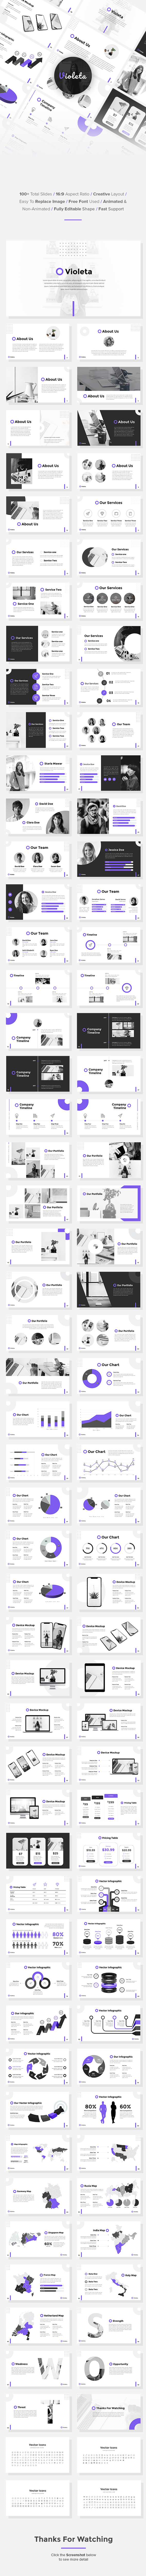 GraphicRiver Violeta StartUp Pitch Deck Google Slides Template 20960831